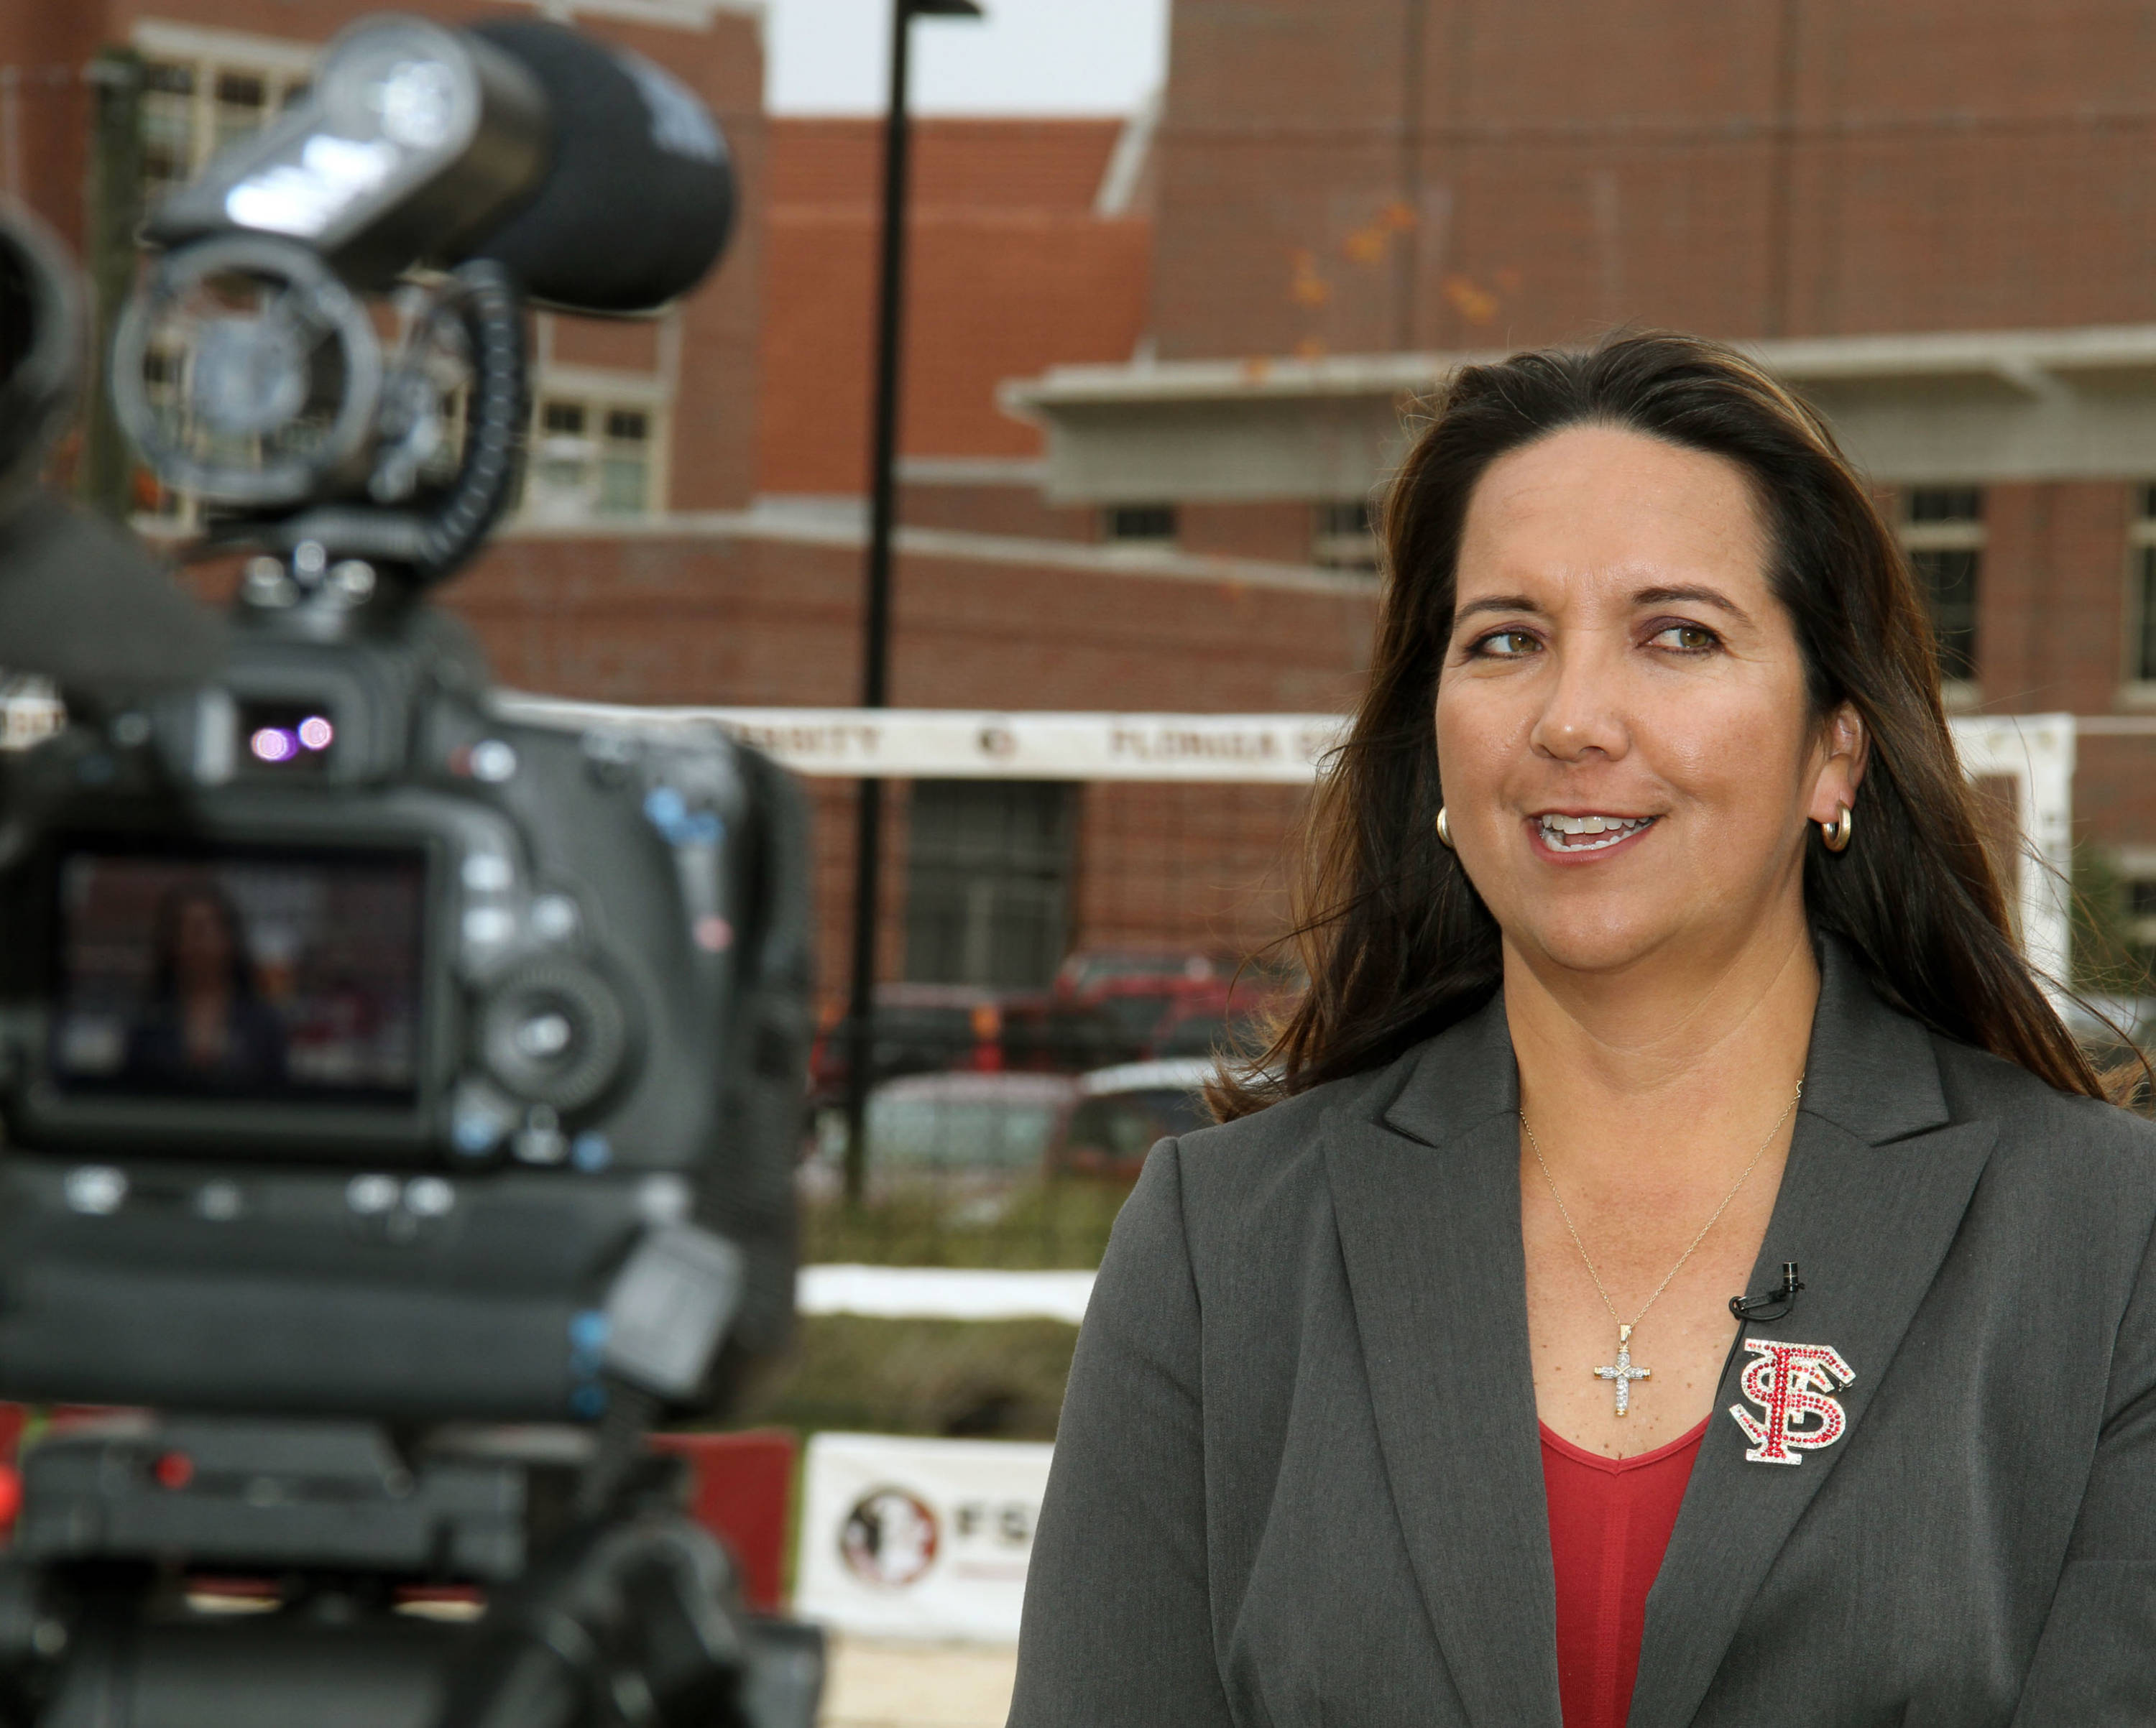 Sand Volleyball Ribbon Cutting Ceremony on January 20, 2012 on the FSU Campus Danalee Corso does an interview.